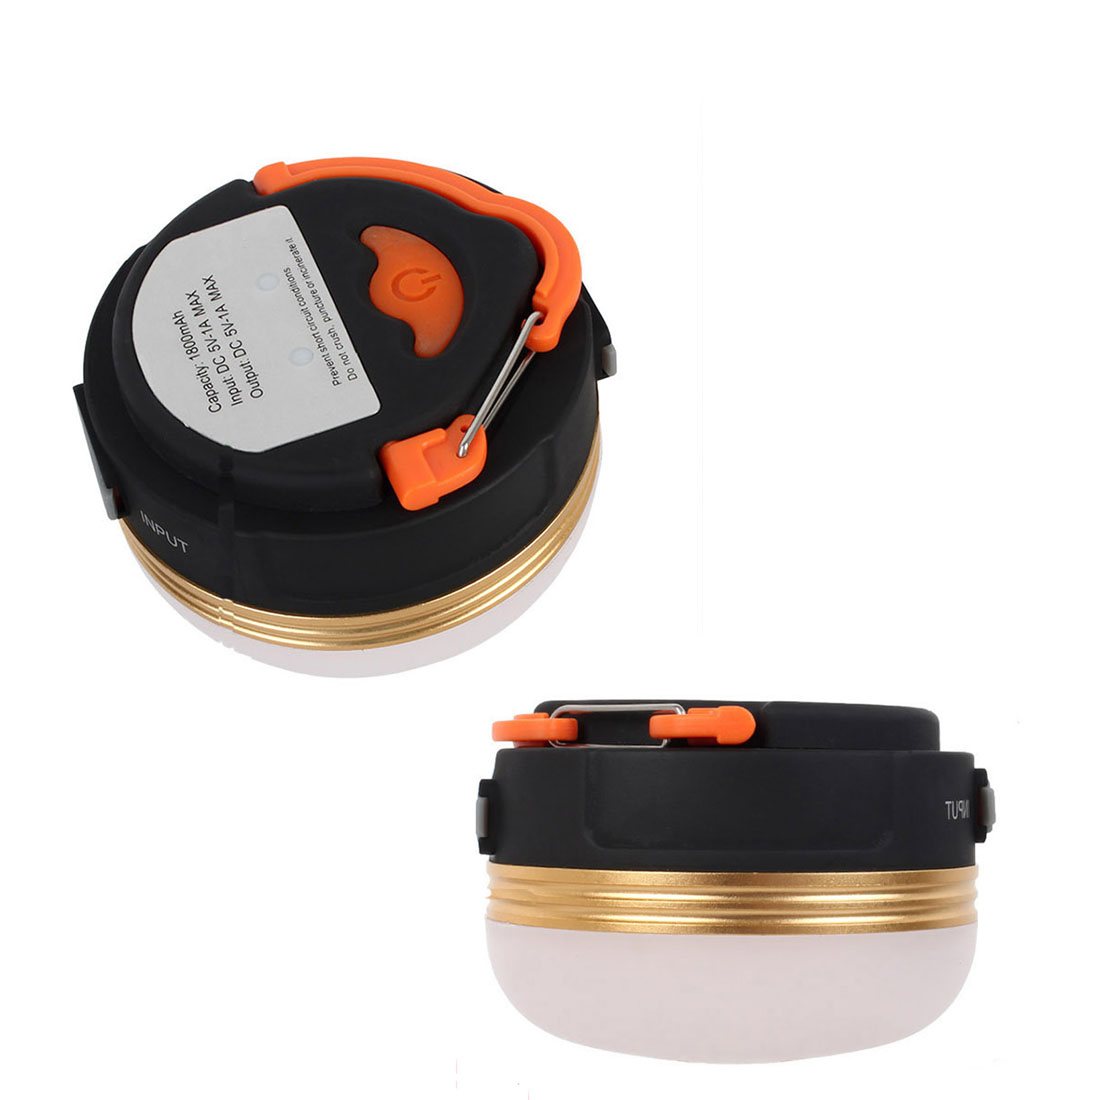 New Mini Portable Camping Lights 3W LED Camping Lantern Waterproof Tents lamp Outdoor Hiking Night Hanging lamp USB Rechargeable